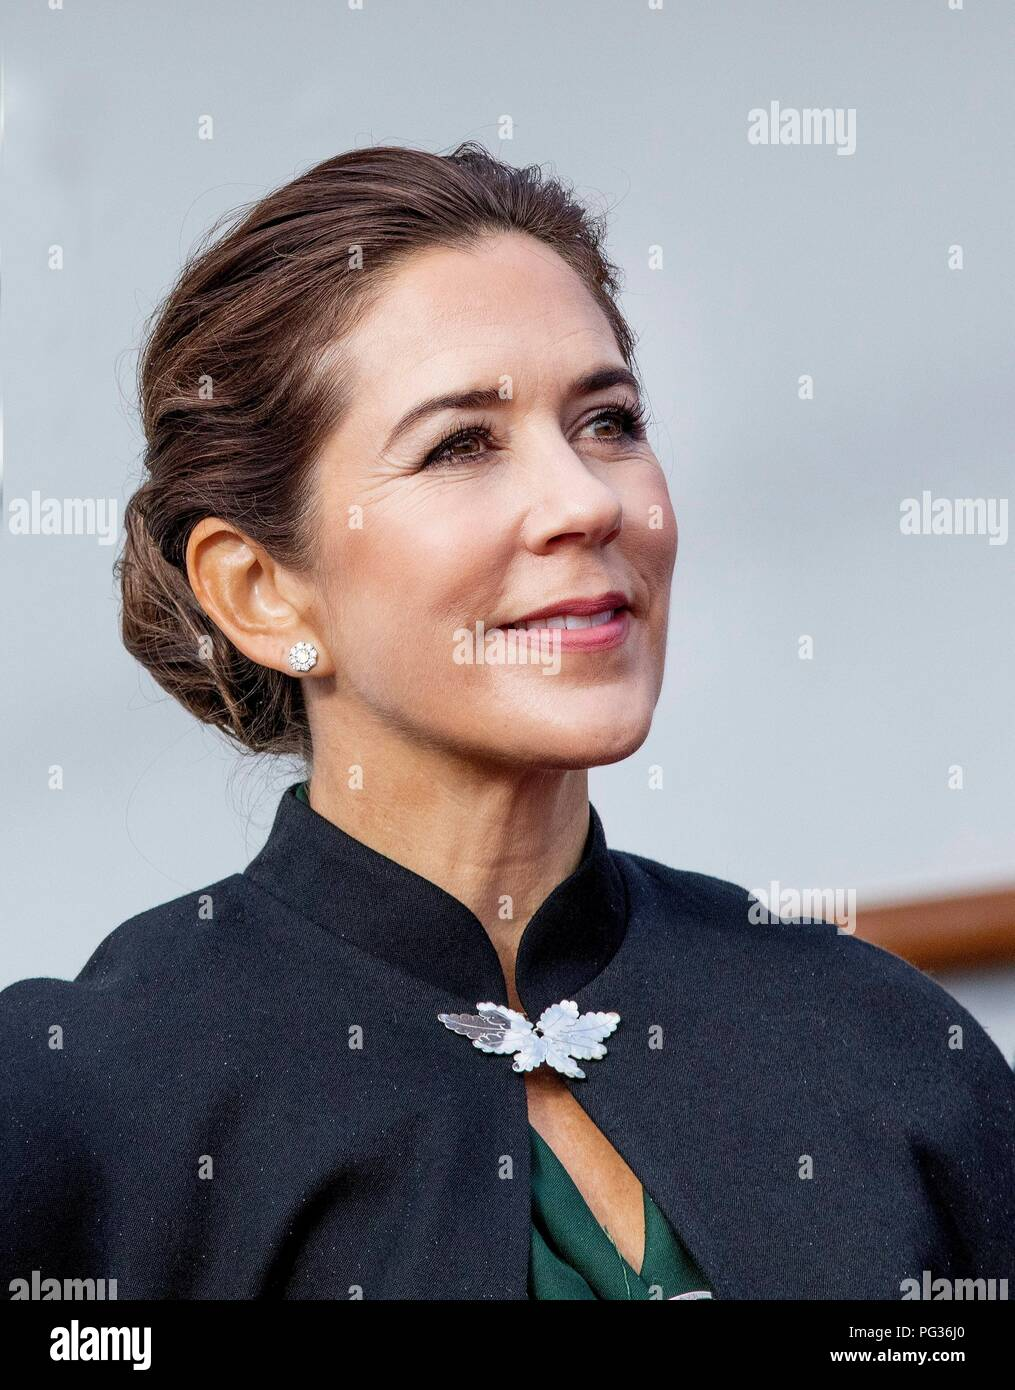 Torshavn, Faroe Islands, Denmark. 23rd Aug, 2018. Crown Princess Mary of Denmark arrive with the The Royal Ship, HDMY Dannebrog at Bursatangi, on August 23, 2018, on the 1st of the 4 days visit to the Faroe Islands Photo : Albert Nieboer/ Netherlands OUT/Point de Vue OUT | Credit: dpa/Alamy Live News - Stock Image